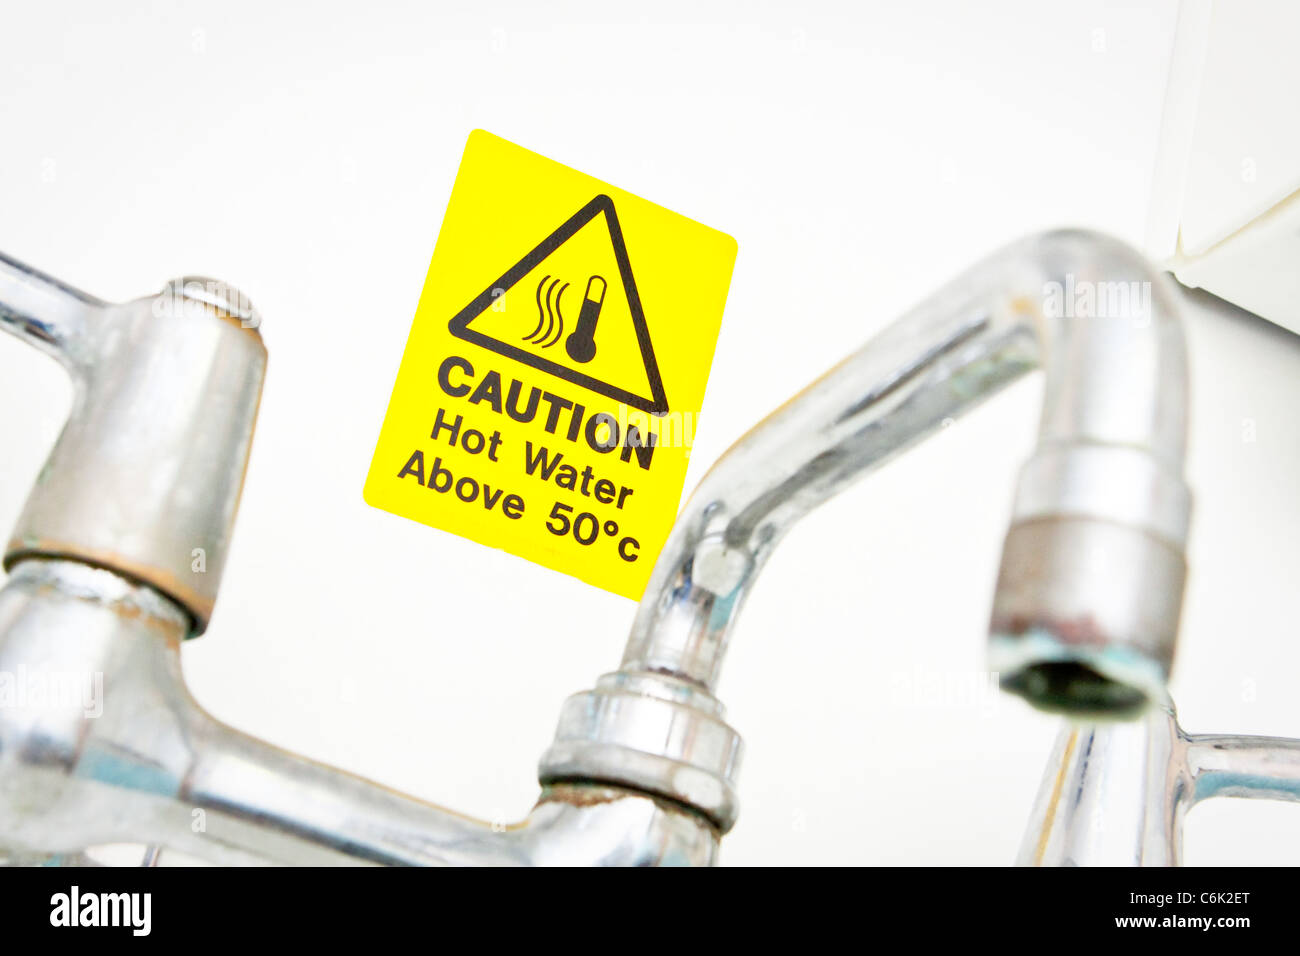 A bright yellow hot water warning notice behind a chrome tap - Stock Image